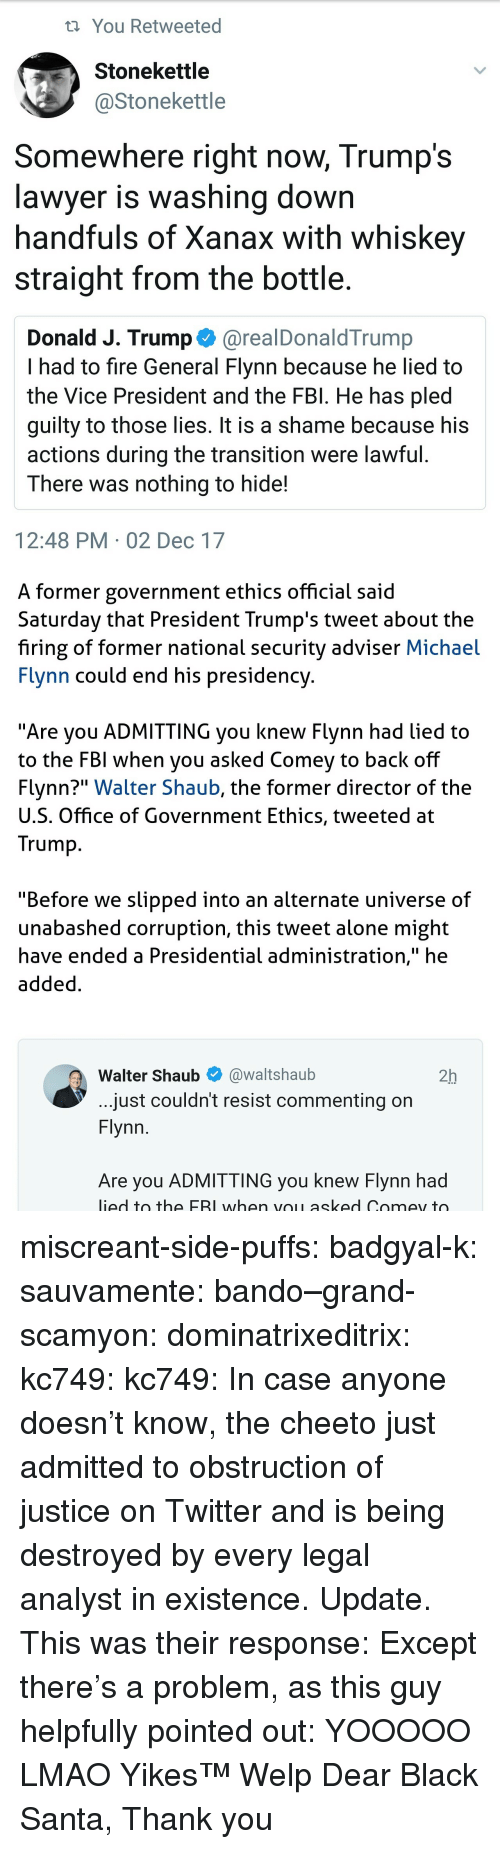 "Being Alone, Bando, and Fbi: t You Retweeted  Stonekettle  @Stonekettle  Somewhere right now, Trump's  lawver is washina down  handfuls of Xanax with whiskey  straight from the bottle.  Donald J. Trump @realDonaldTrump  I had to fire General Flynn because he lied to  the Vice President and the FBl. He has pled  quilty to those lies. It is a shame because his  actions during the transition were lawful  There was nothing to hide!  12:48 PM 02 Dec 17   A former government ethics official said  Saturday that President Trump's tweet about the  firing of former national security adviser Michael  Flynn could end his presidency  ""Are you ADMITTING you knew Flynn had lied to  to the FBI when you asked Comev to back off  Flynn?"" Walter Shaub, the former director of the  U.S. Office of Government Ethics, tweeted at  Trump  ""Before we slipped into an alternate universe of  unabashed corruption, this tweet alone might  have ended a Presidential administration,"" he  added  Walter Shaub@waltshaub  2h  just couldn't resist commenting on  Flynn  Are you ADMITTING you knew Flynn had  ied to the FBI when voL asked Comey to miscreant-side-puffs:  badgyal-k:  sauvamente:   bando–grand-scamyon:   dominatrixeditrix:  kc749:  kc749:  In case anyone doesn't know, the cheeto just admitted to obstruction of justice on Twitter and is being destroyed by every legal analyst in existence.  Update. This was their response:  Except there's a problem, as this guy helpfully pointed out:    YOOOOO LMAO   Yikes™   Welp    Dear Black Santa, Thank you"